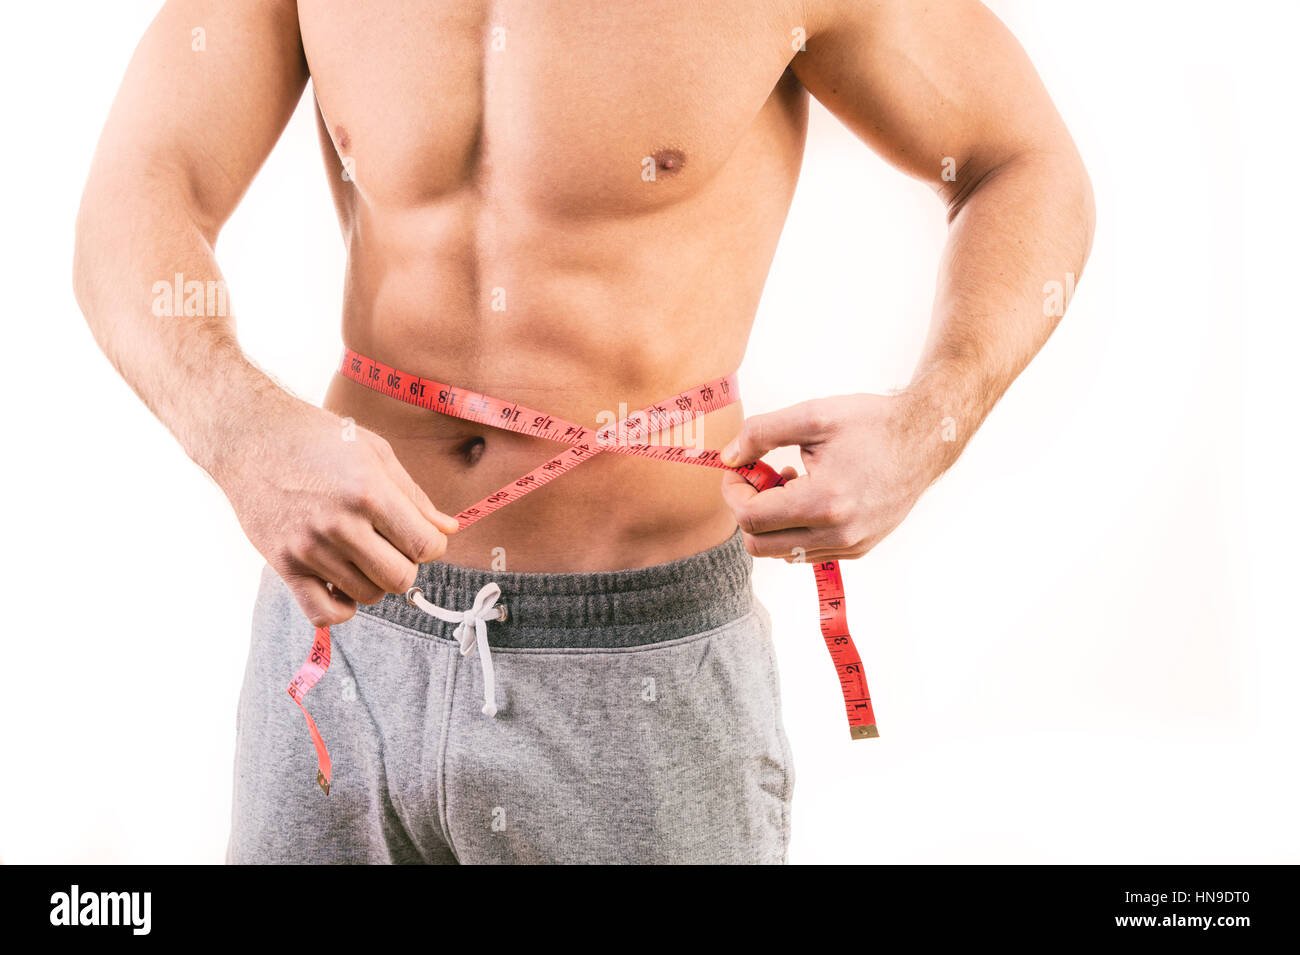 Male torso and red tape measure on white background - Stock Image